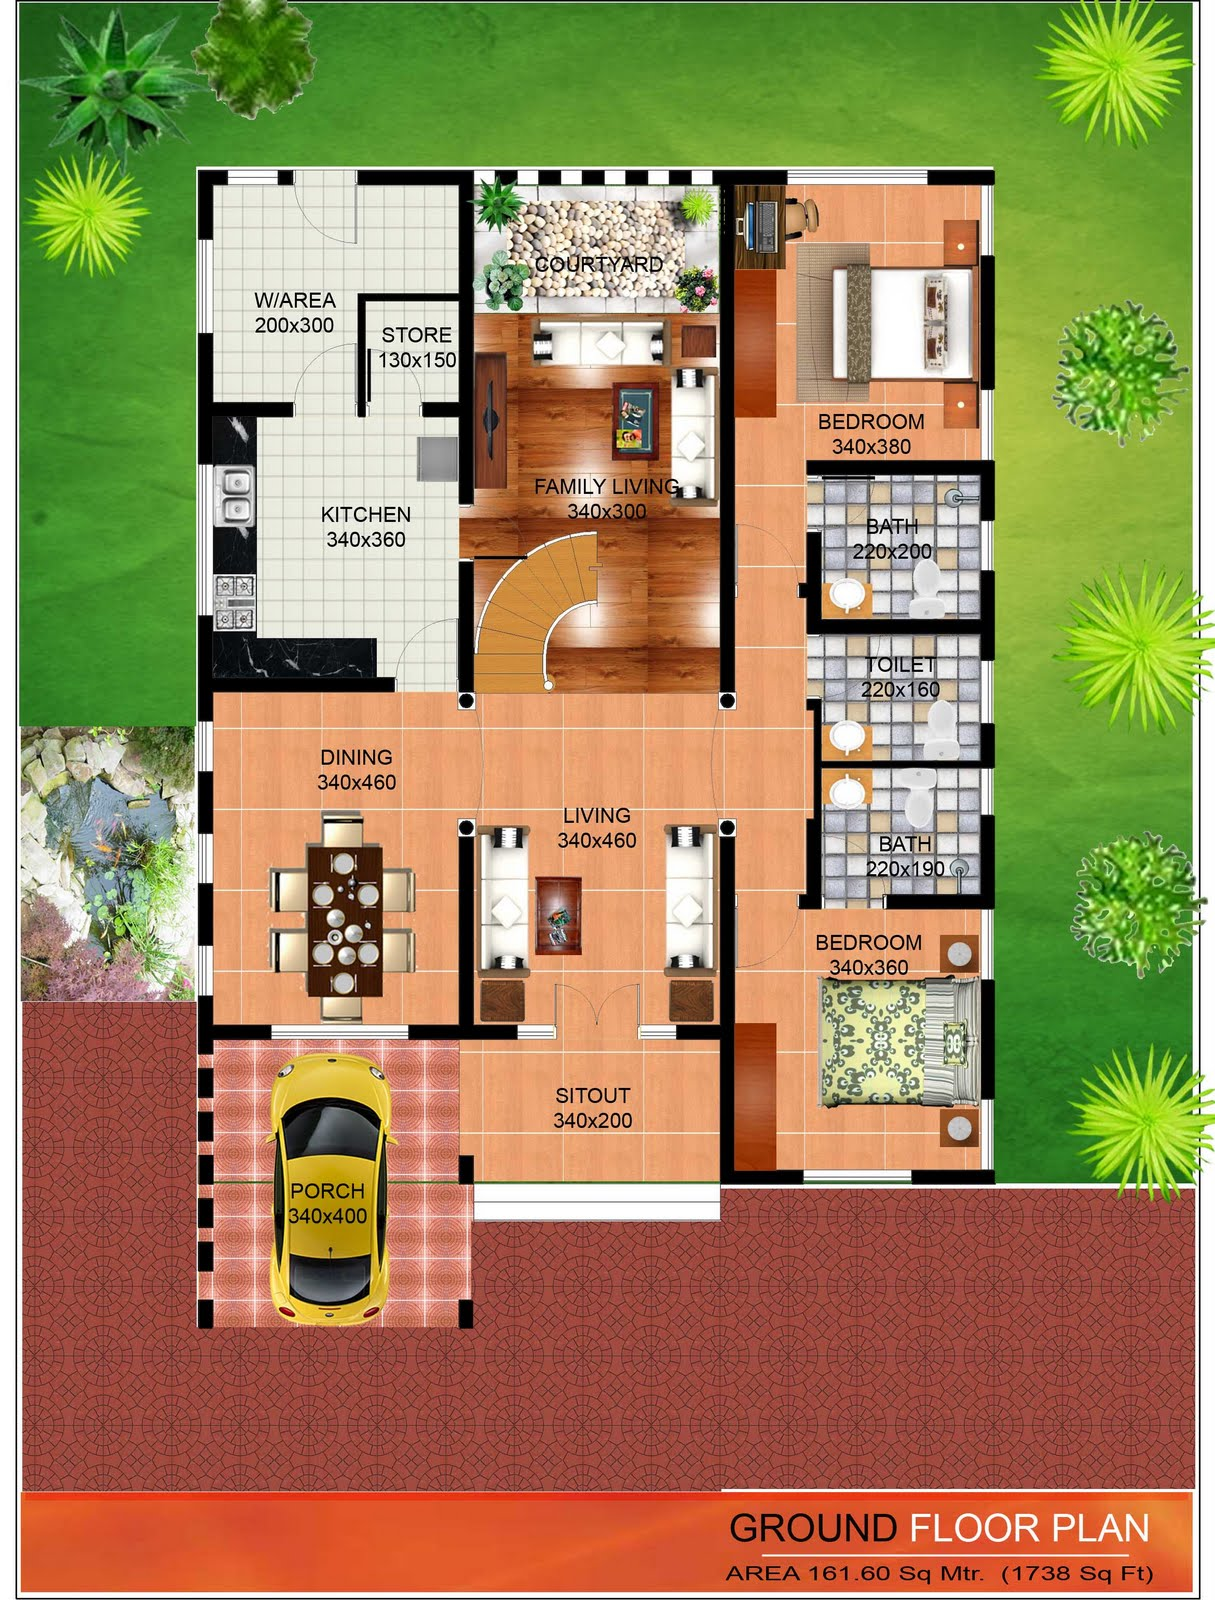 Home Interior Design Play Over Free Online Games Including Movie